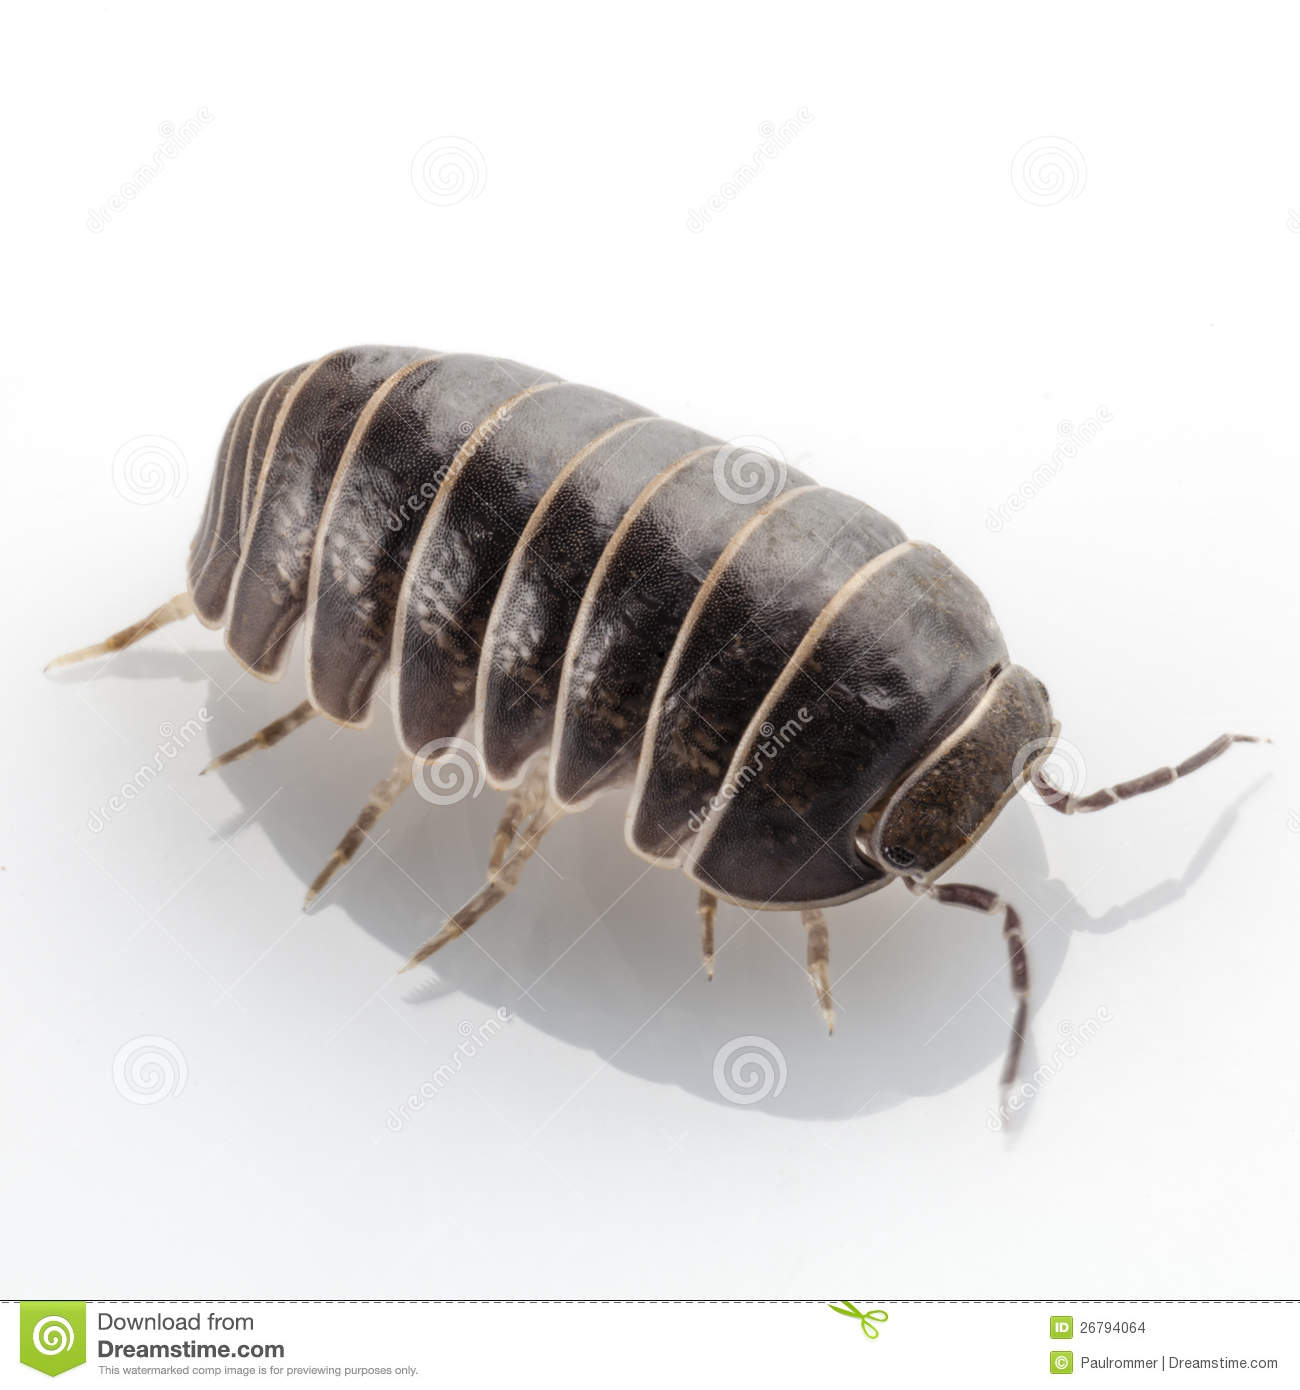 Pill Bug Armadillidium Vulgare Species Isolated On White Background